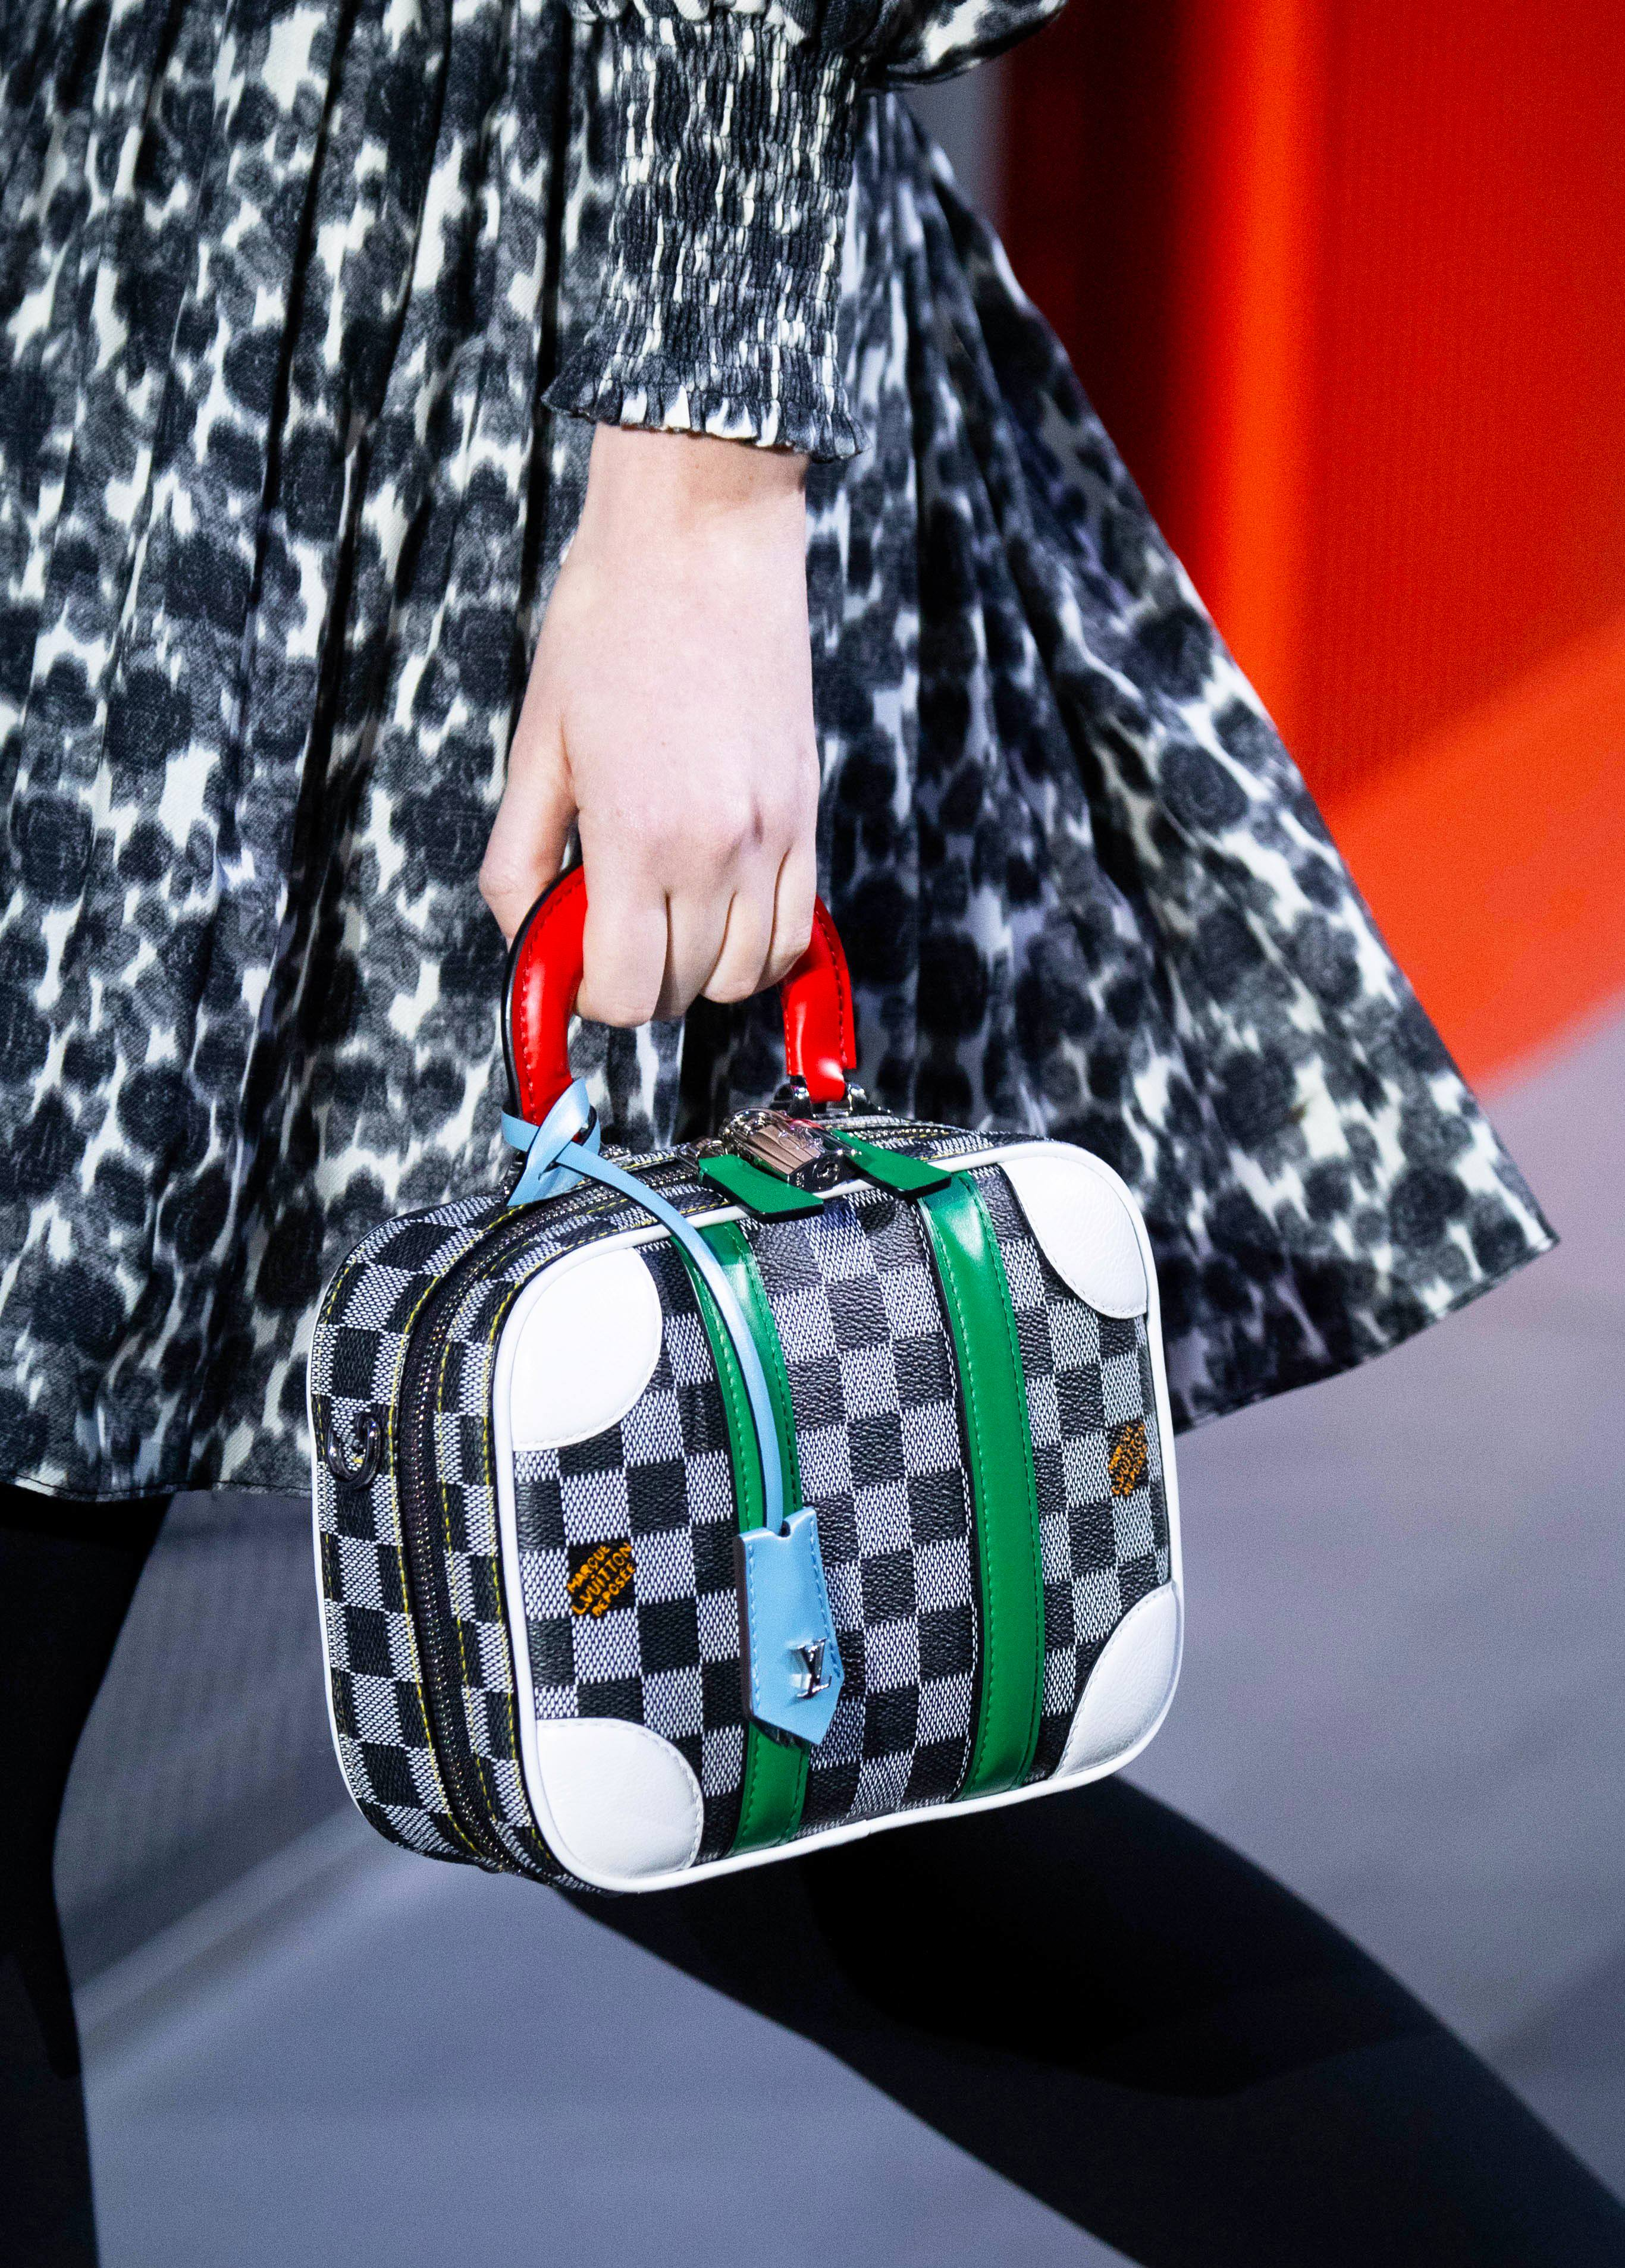 Louis Vuitton Mini Luggage BB handbag from the Fall 2019 Runway Collection